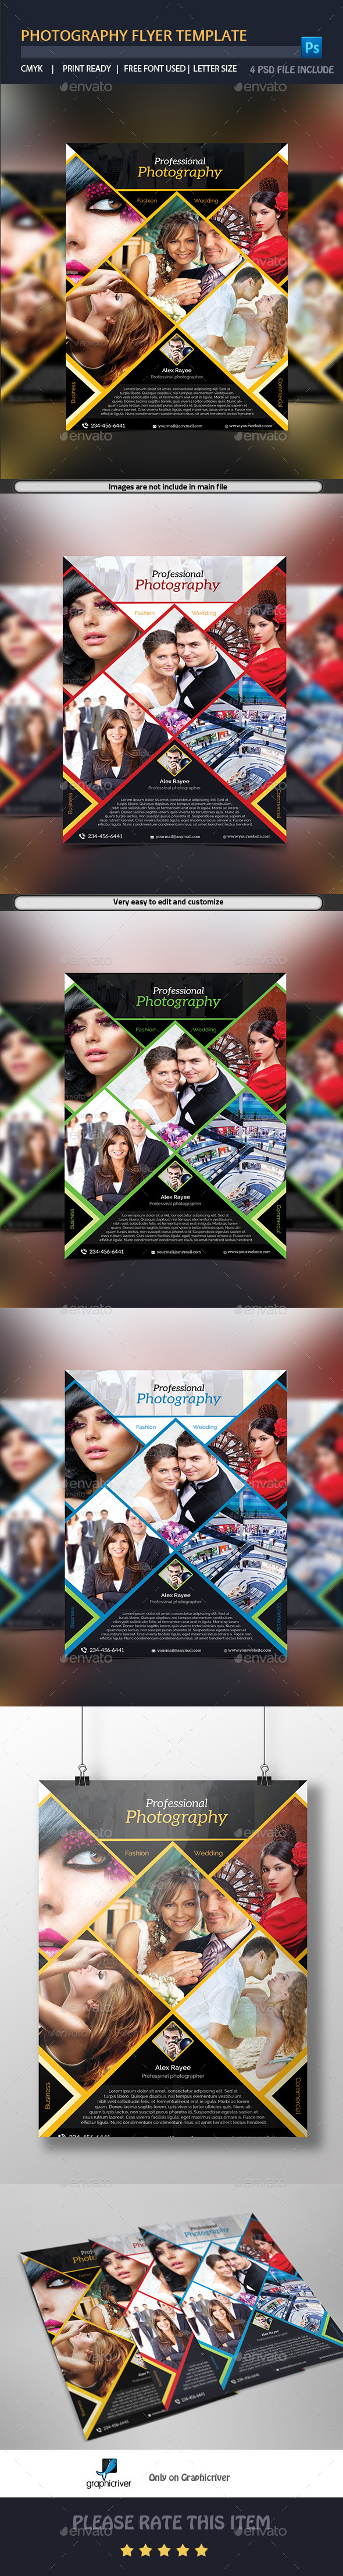 GraphicRiver Photography Flyer Template 9513422